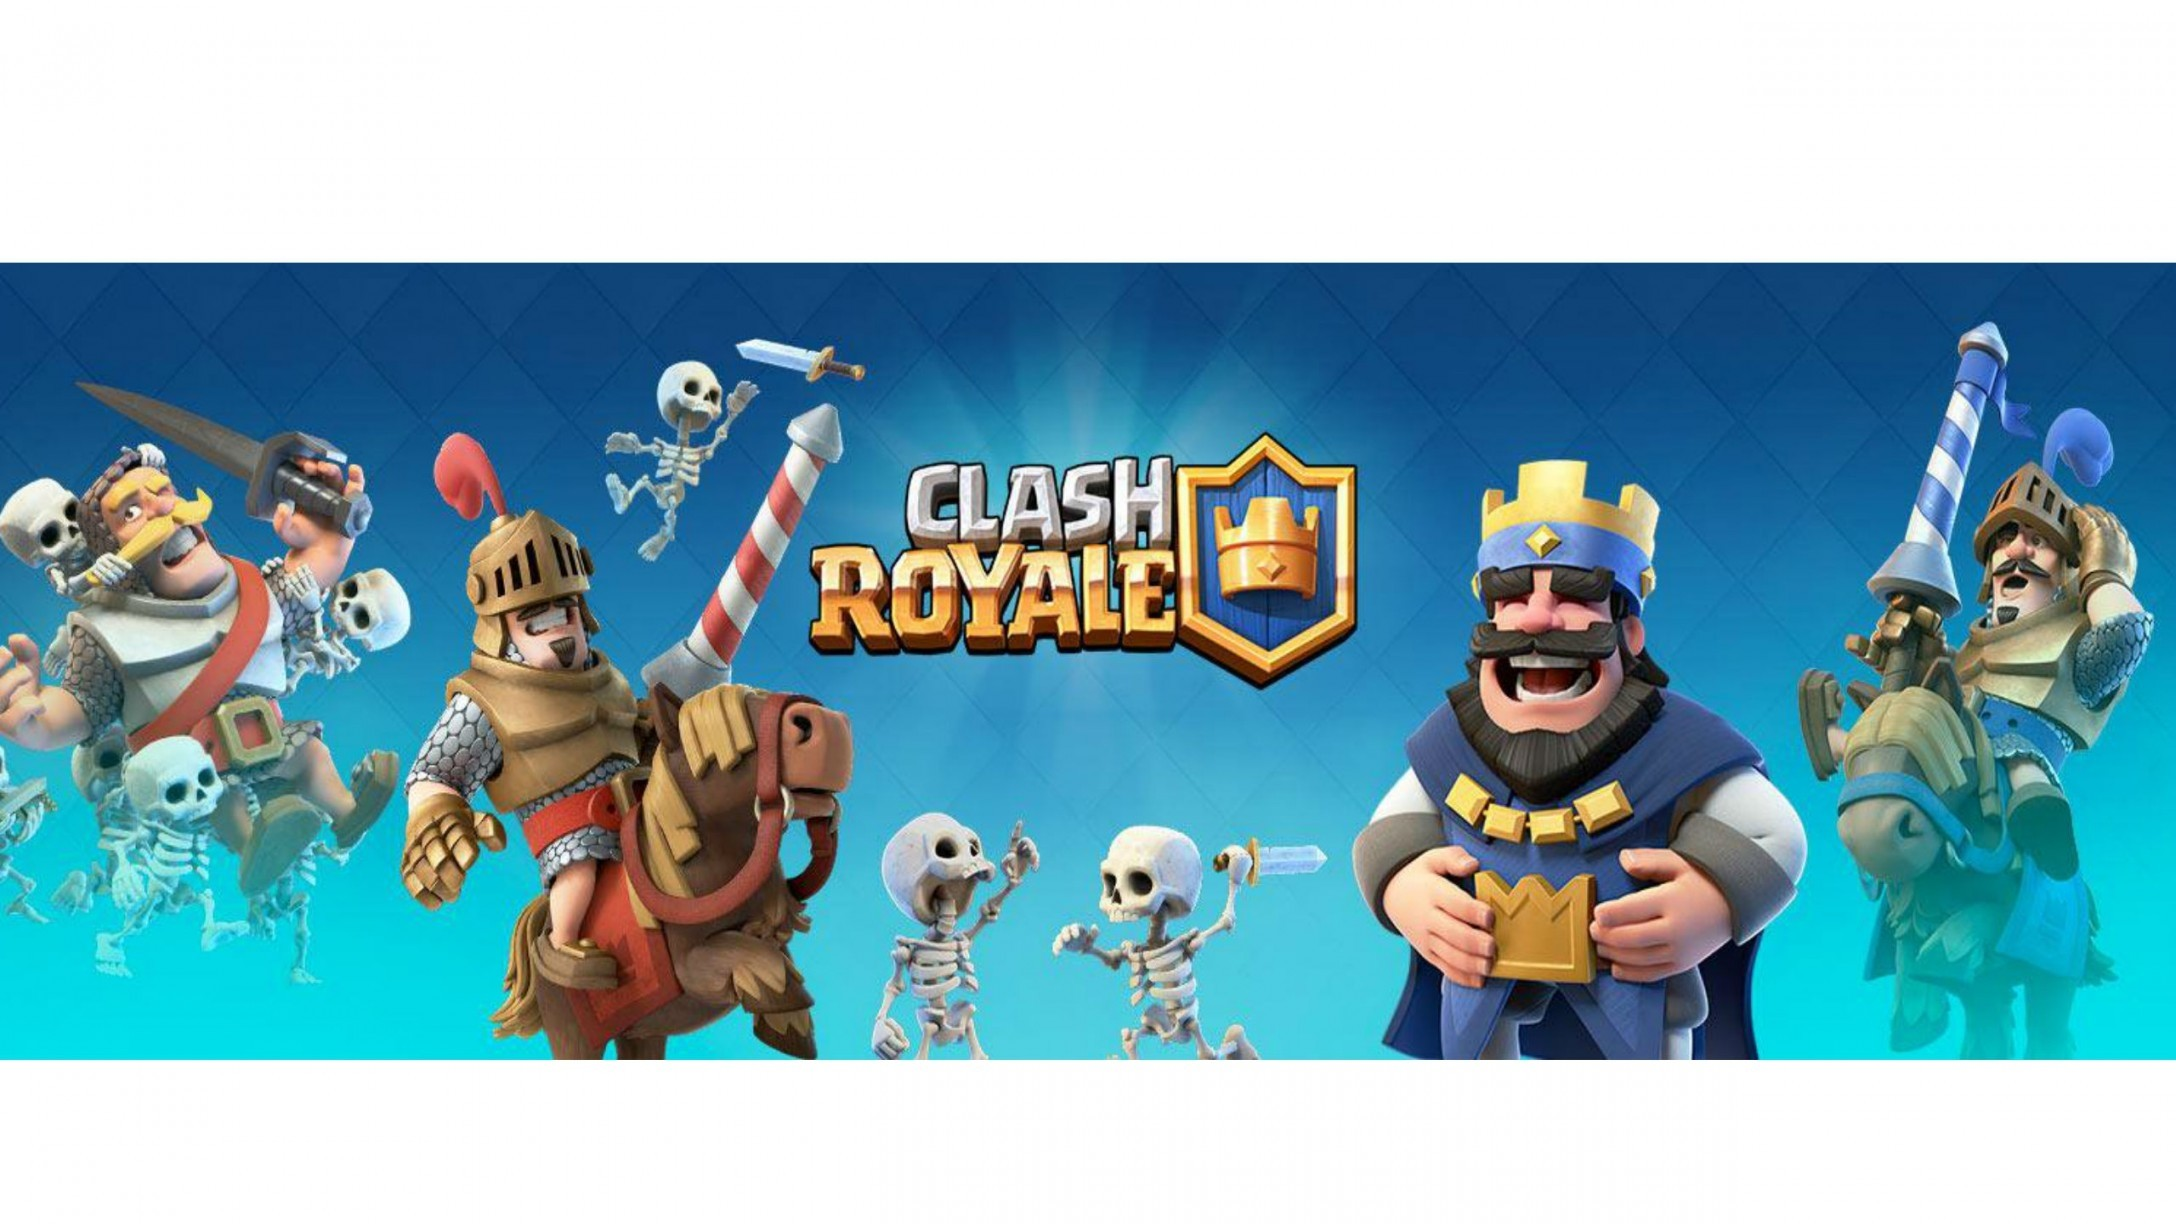 2176x1224 Similiar Clash Royale No Backround Keywords with Clash Royale Wallpaper  2560X1440